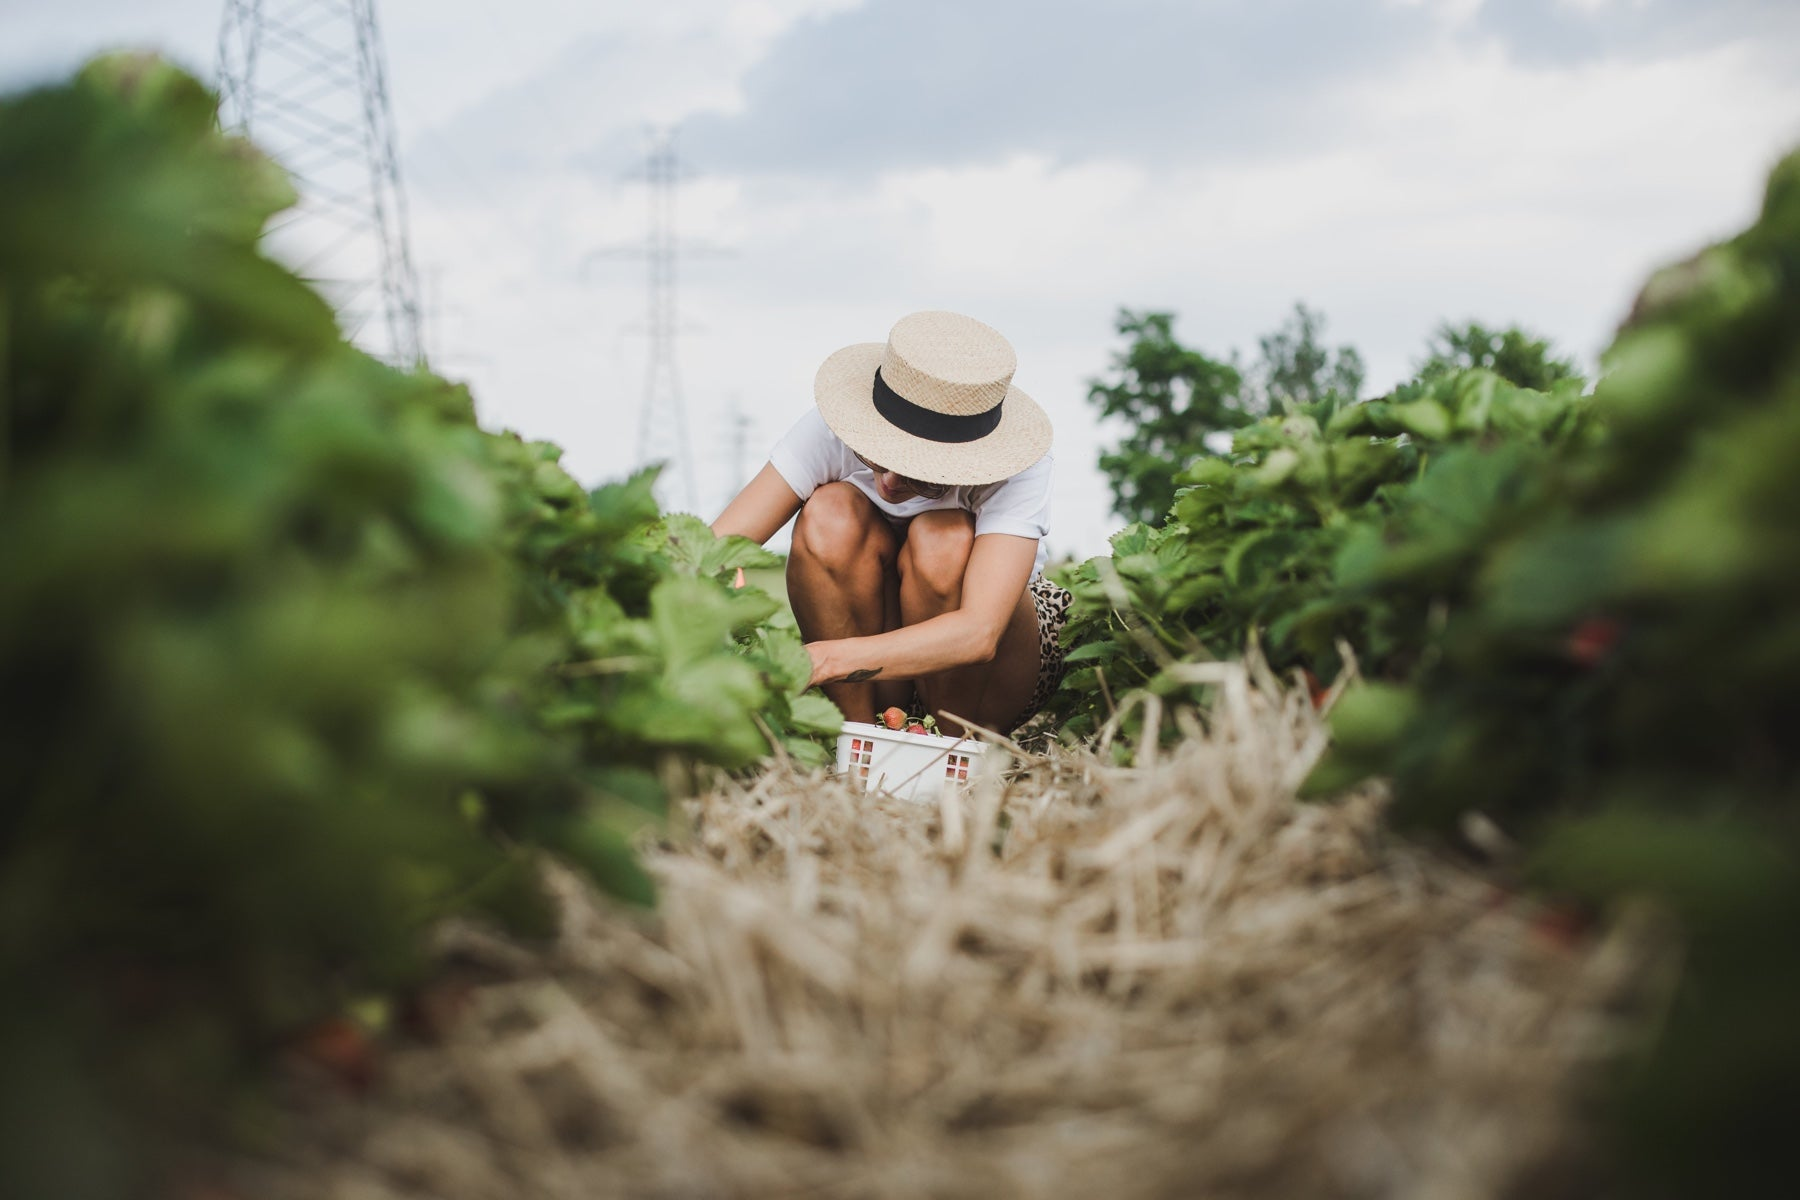 A woman crouches to pick strawberries in a field